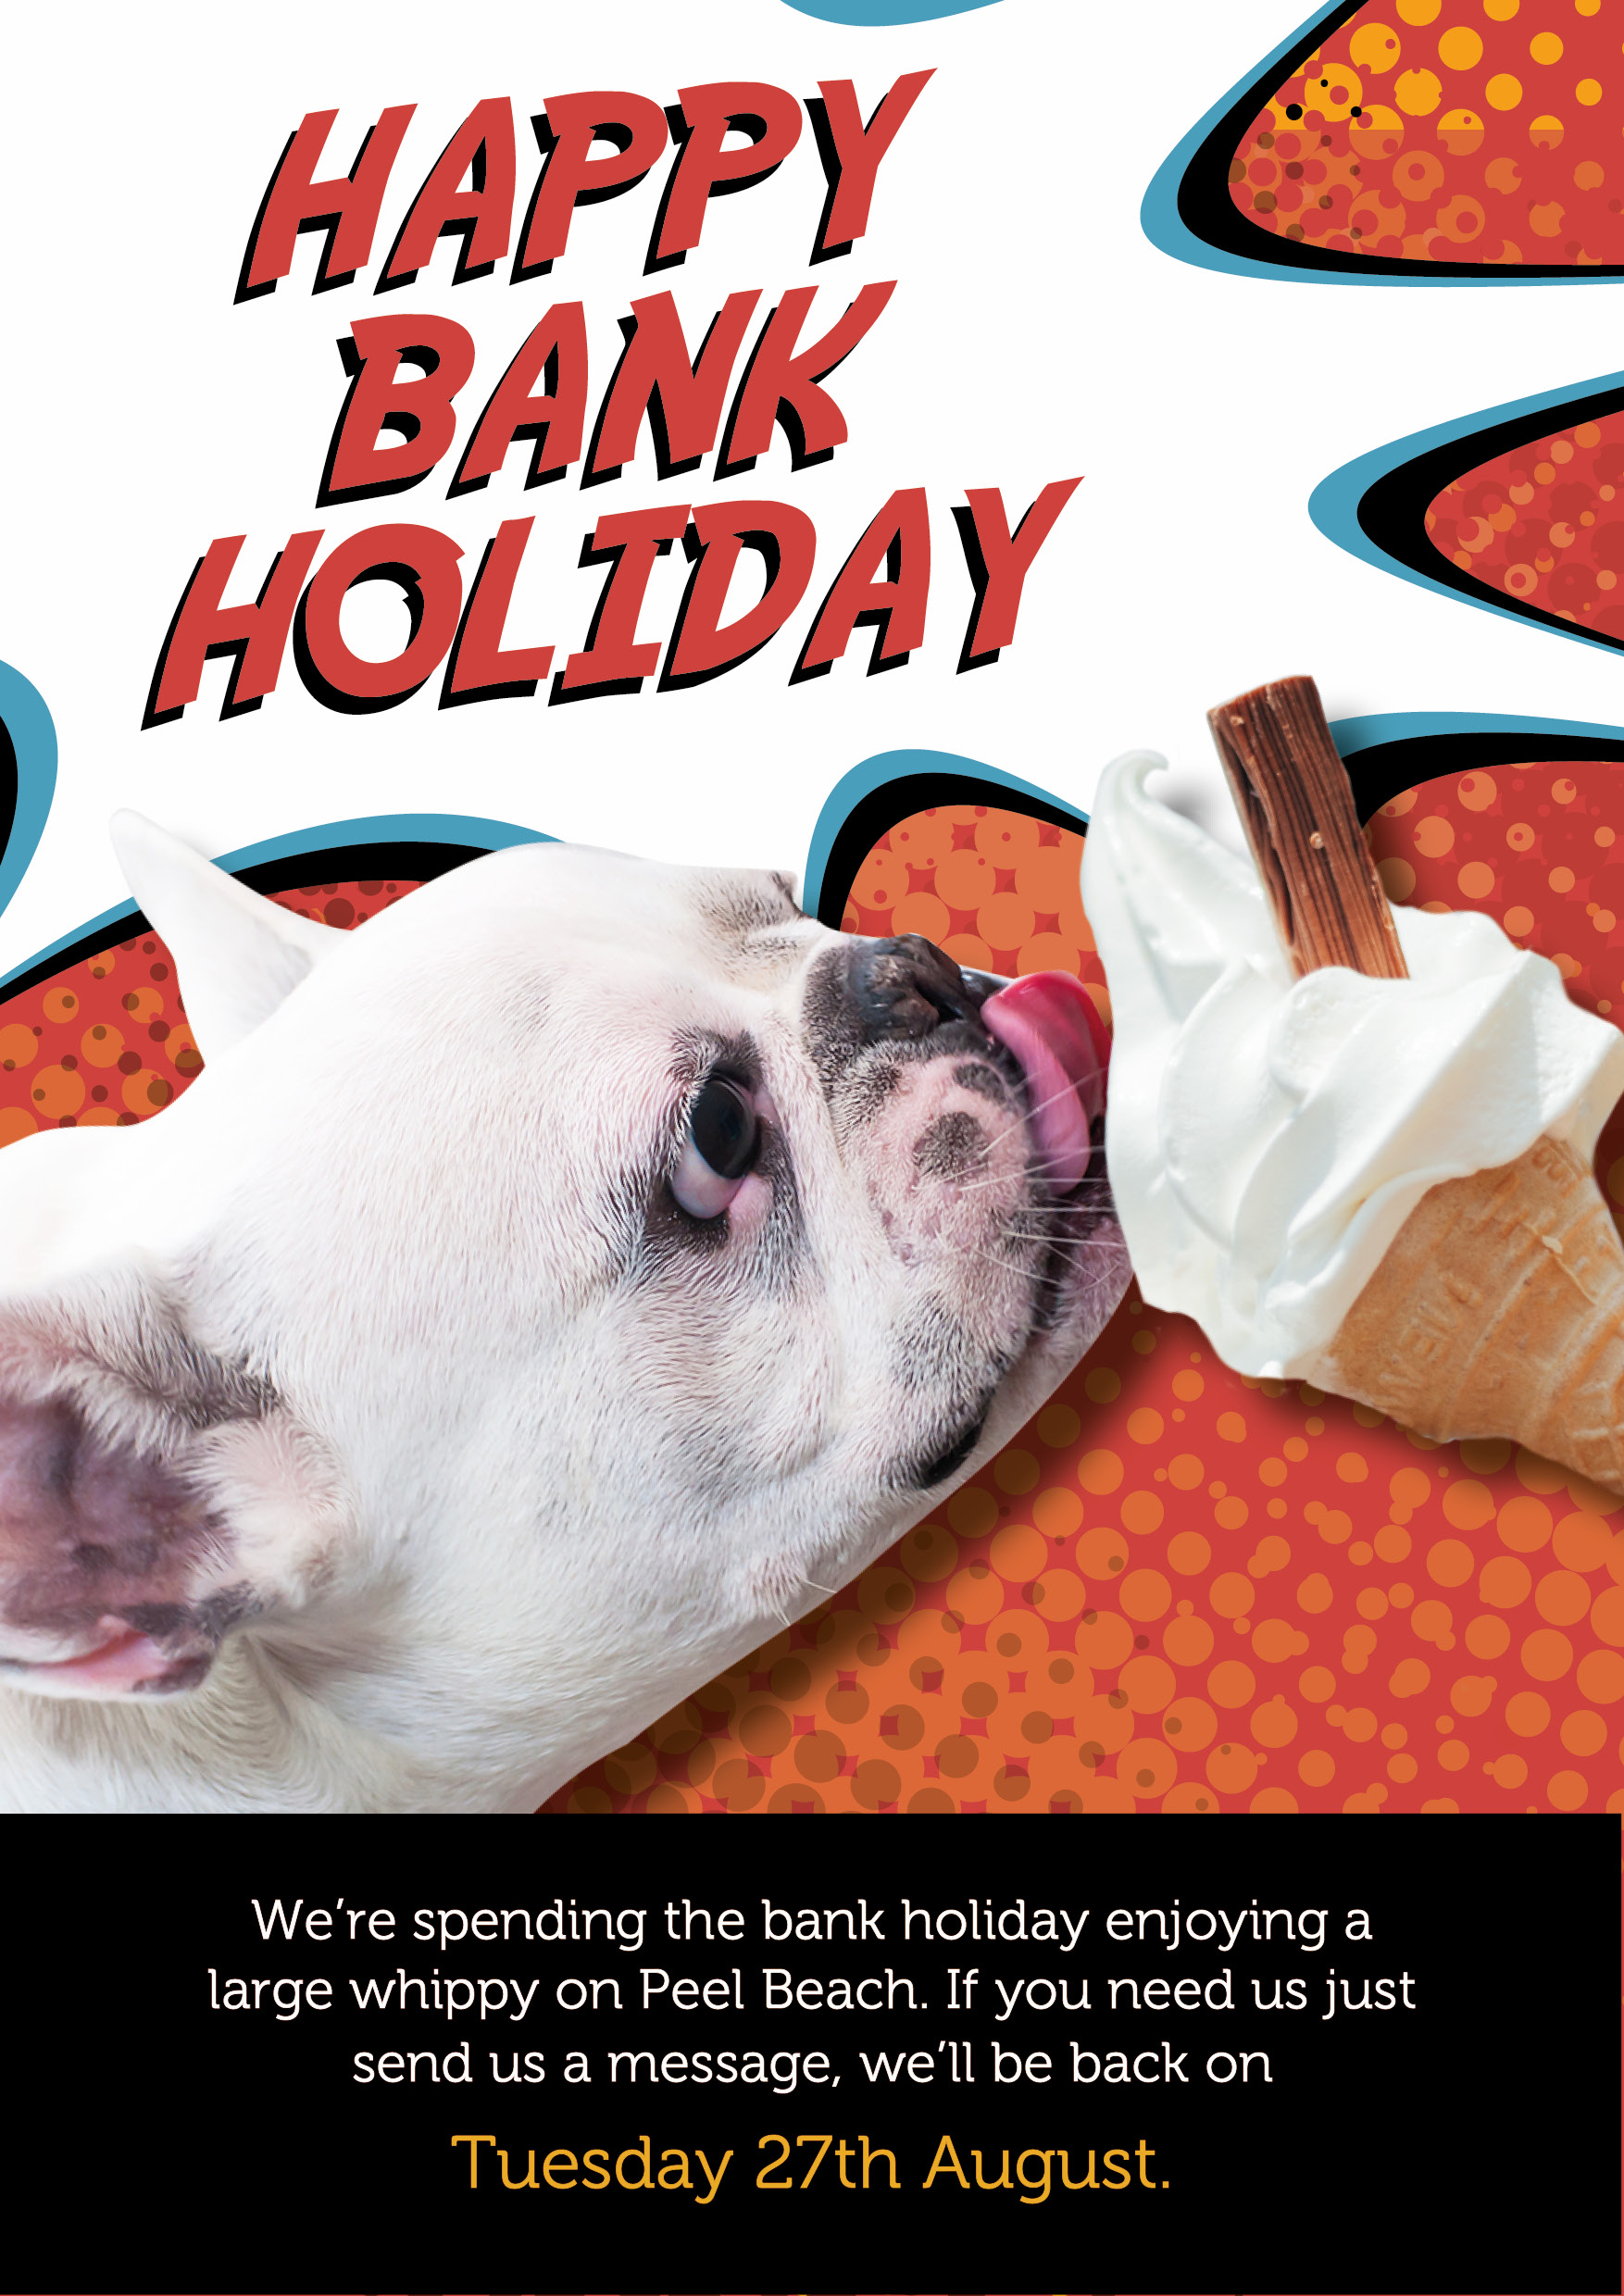 Sorry we're closed today enjoying the may May Bank holiday- we'll be back in business and happy to assist when we Tuesday 28th May.